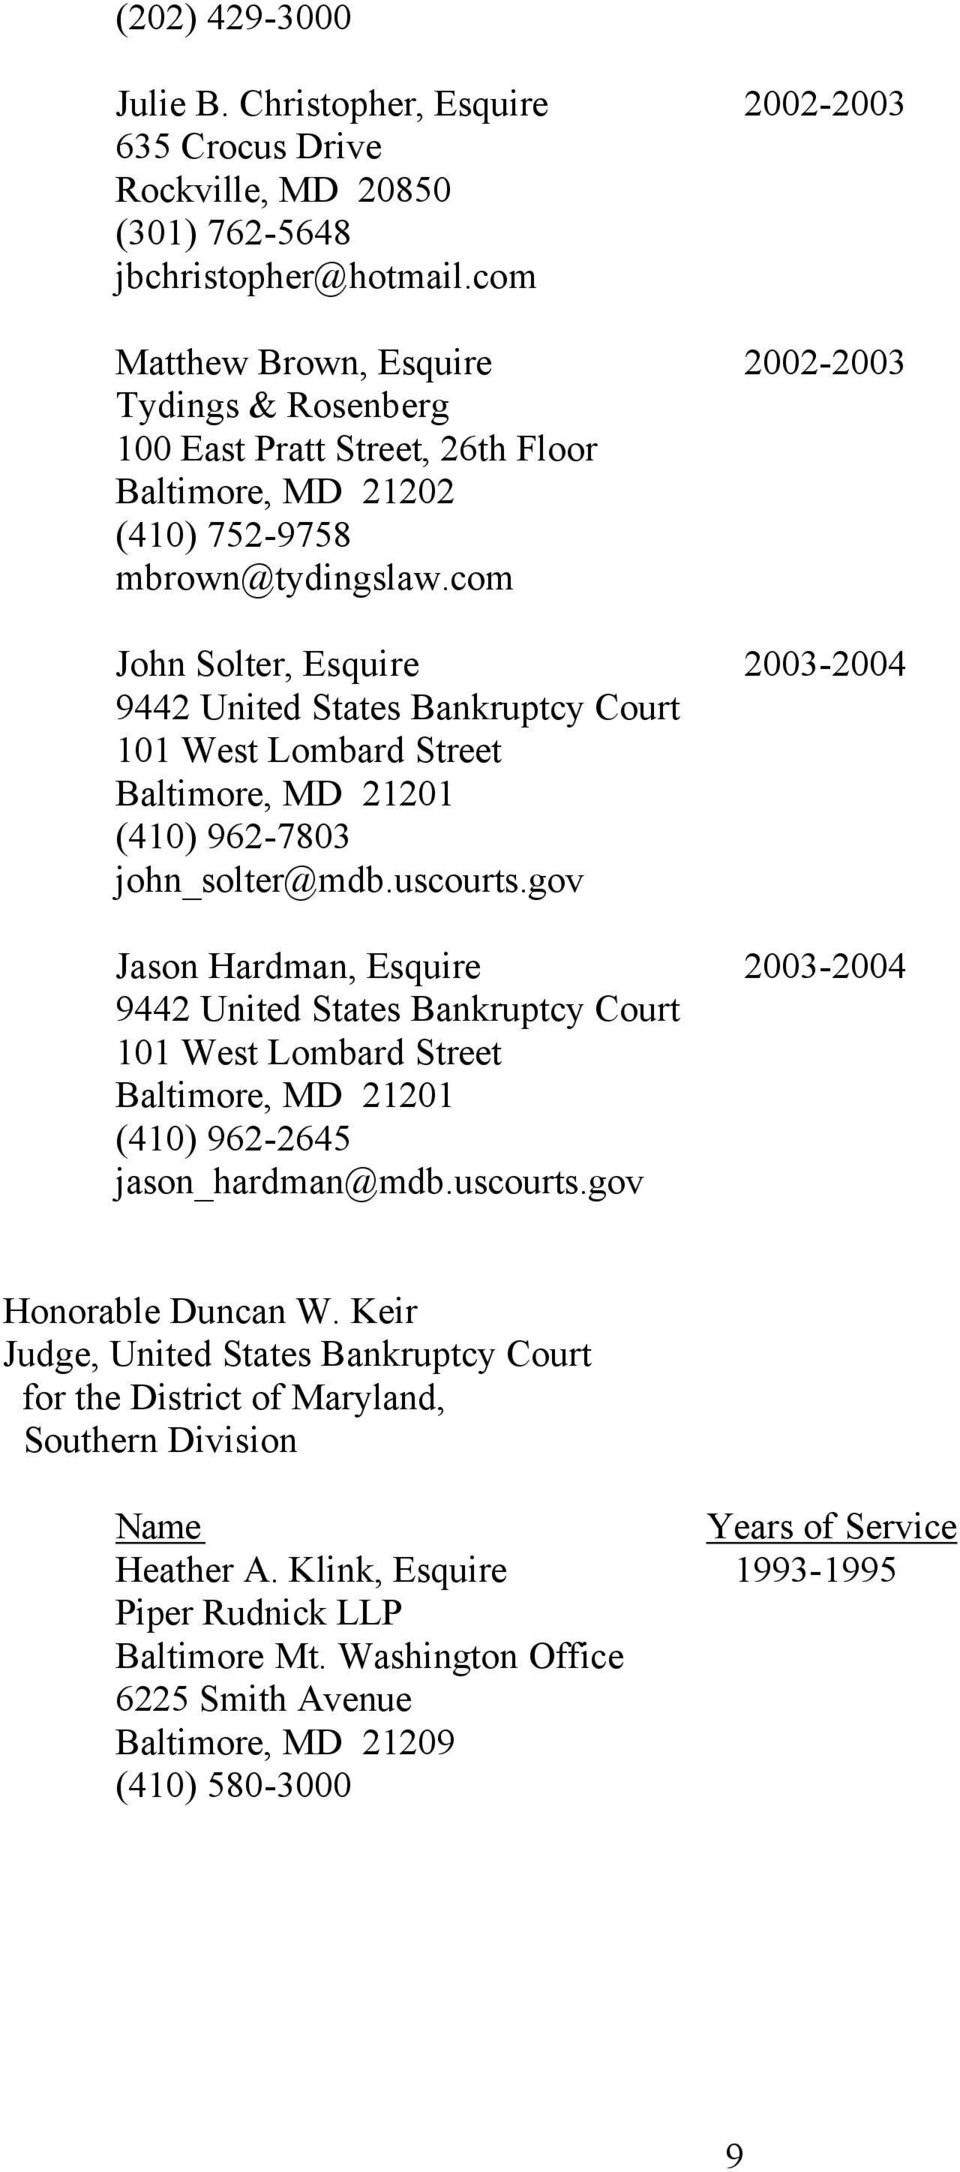 com John Solter, Esquire 2003-2004 9442 United States Bankruptcy Court 101 West Lombard Street Baltimore, MD 21201 (410) 962-7803 john_solter@mdb.uscourts.